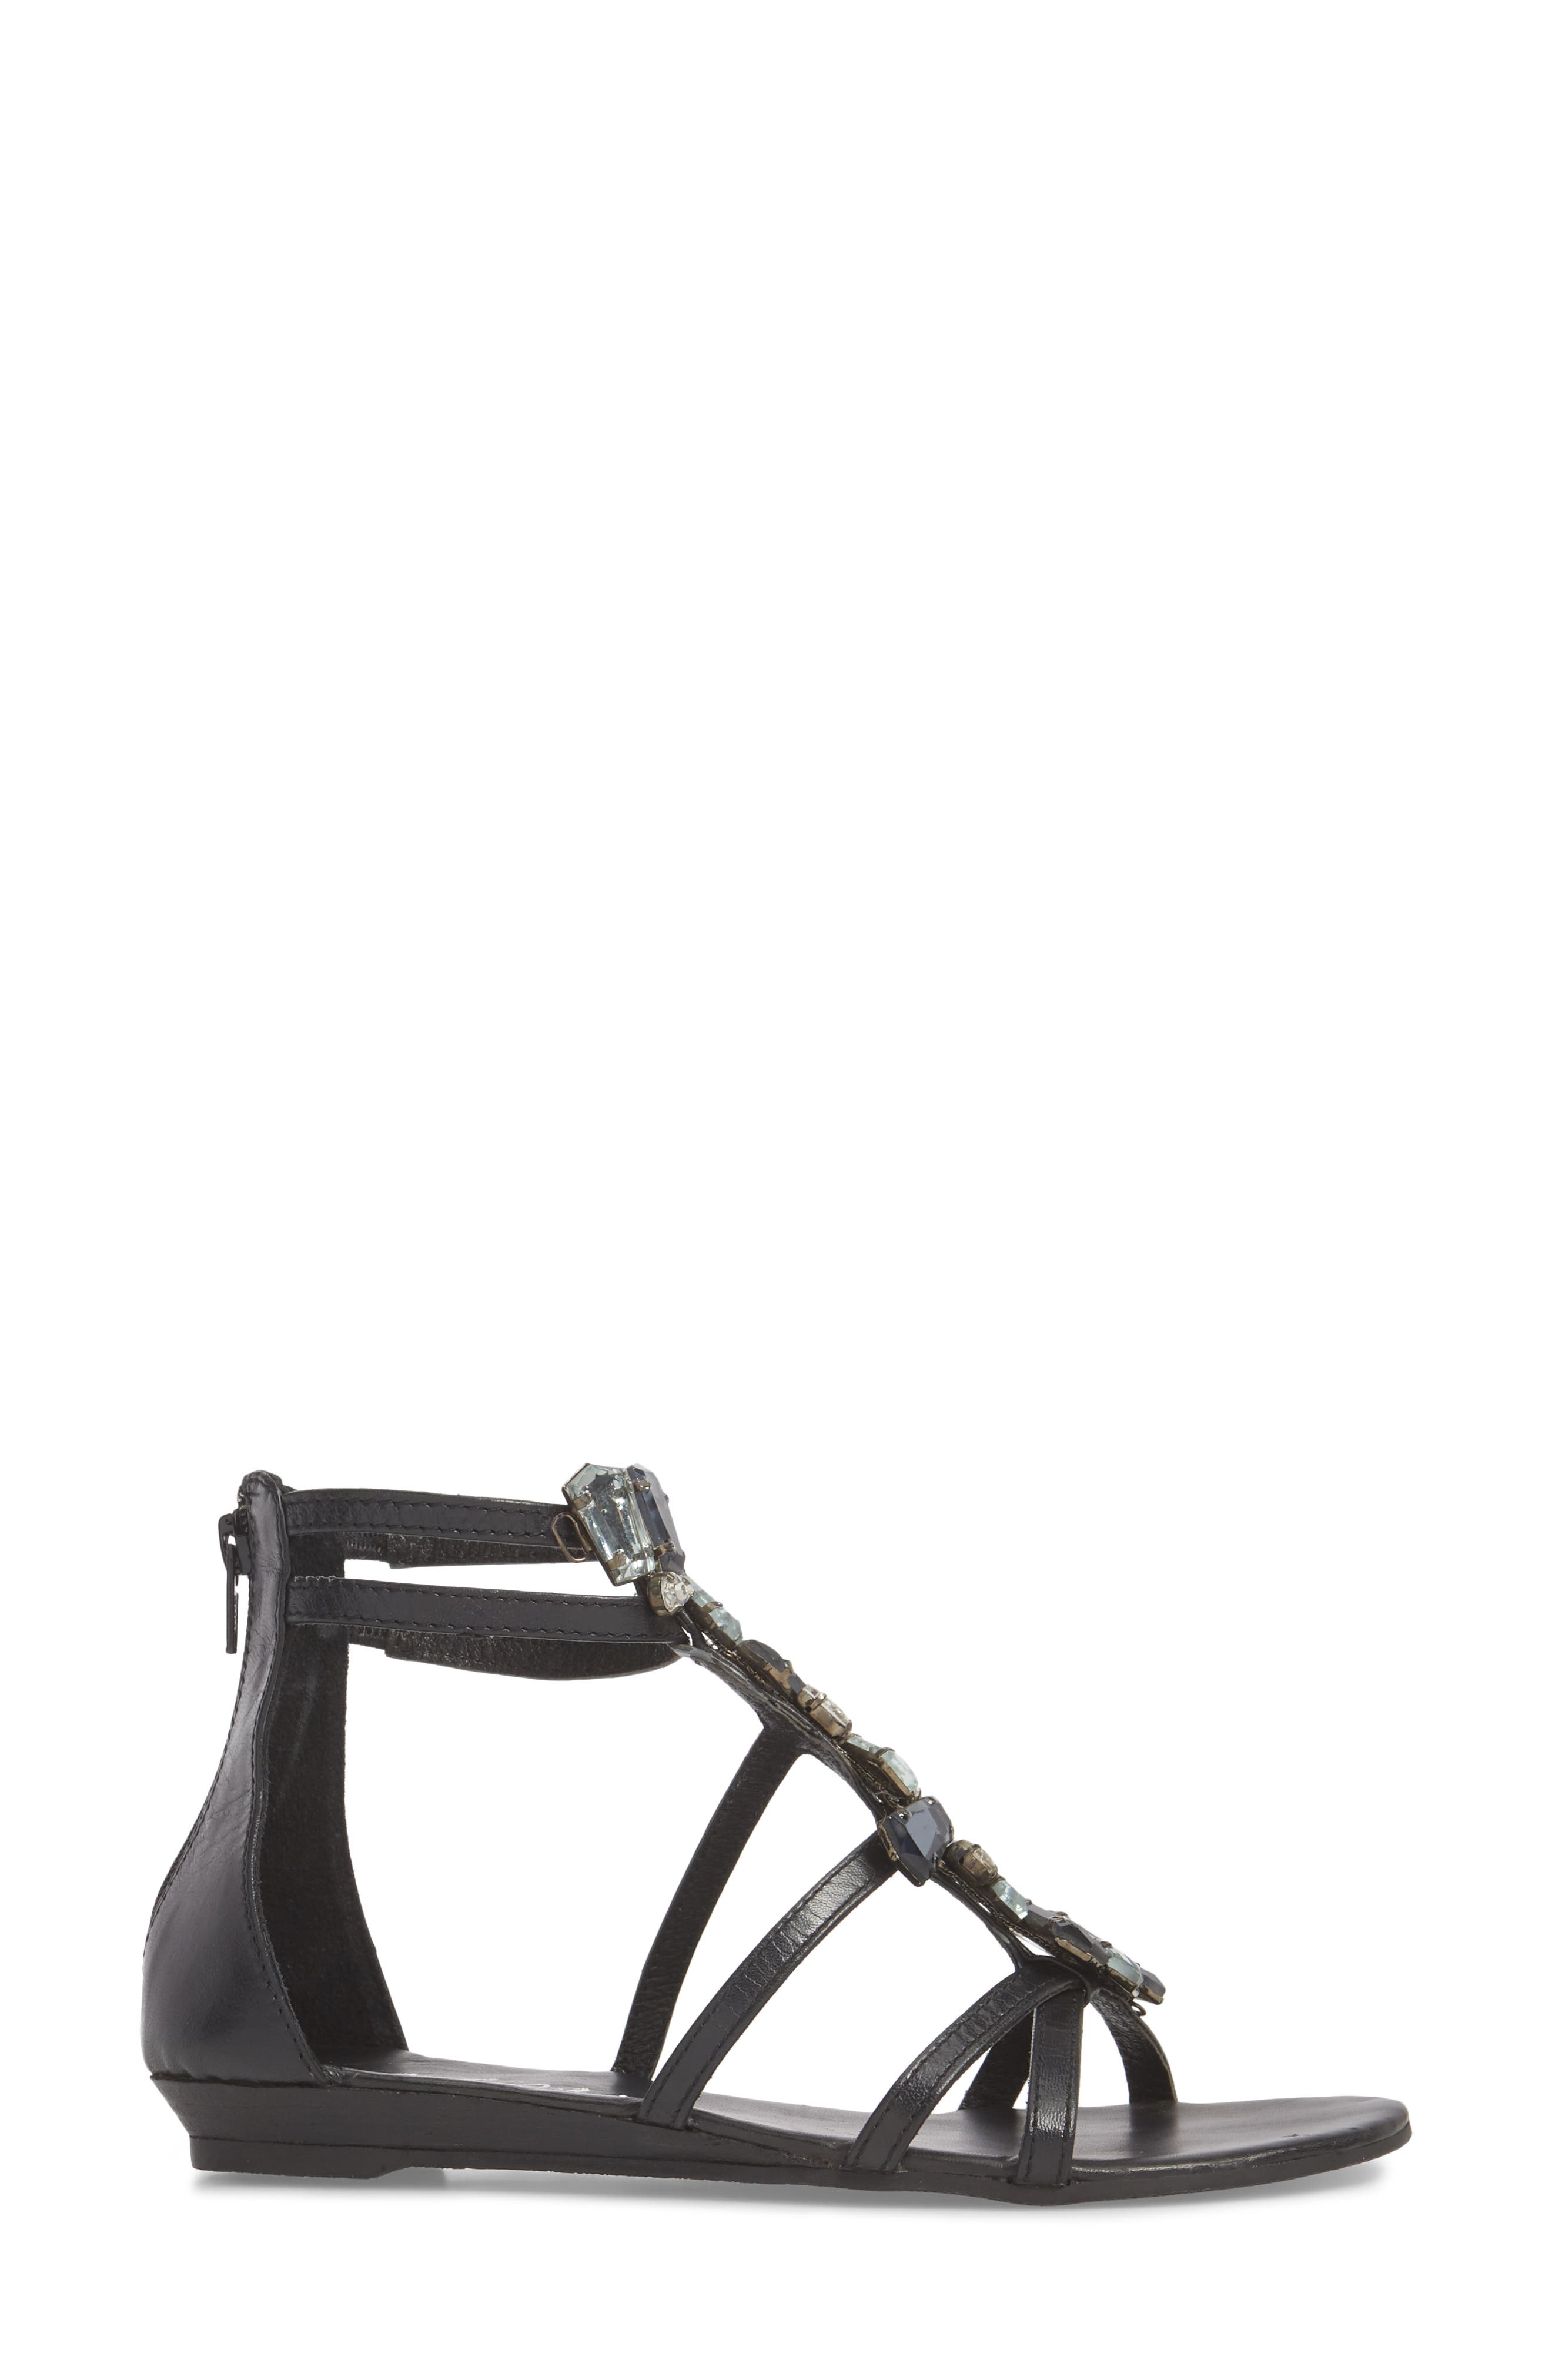 Didi Crystal Embellished Sandal,                             Alternate thumbnail 3, color,                             Black Leather